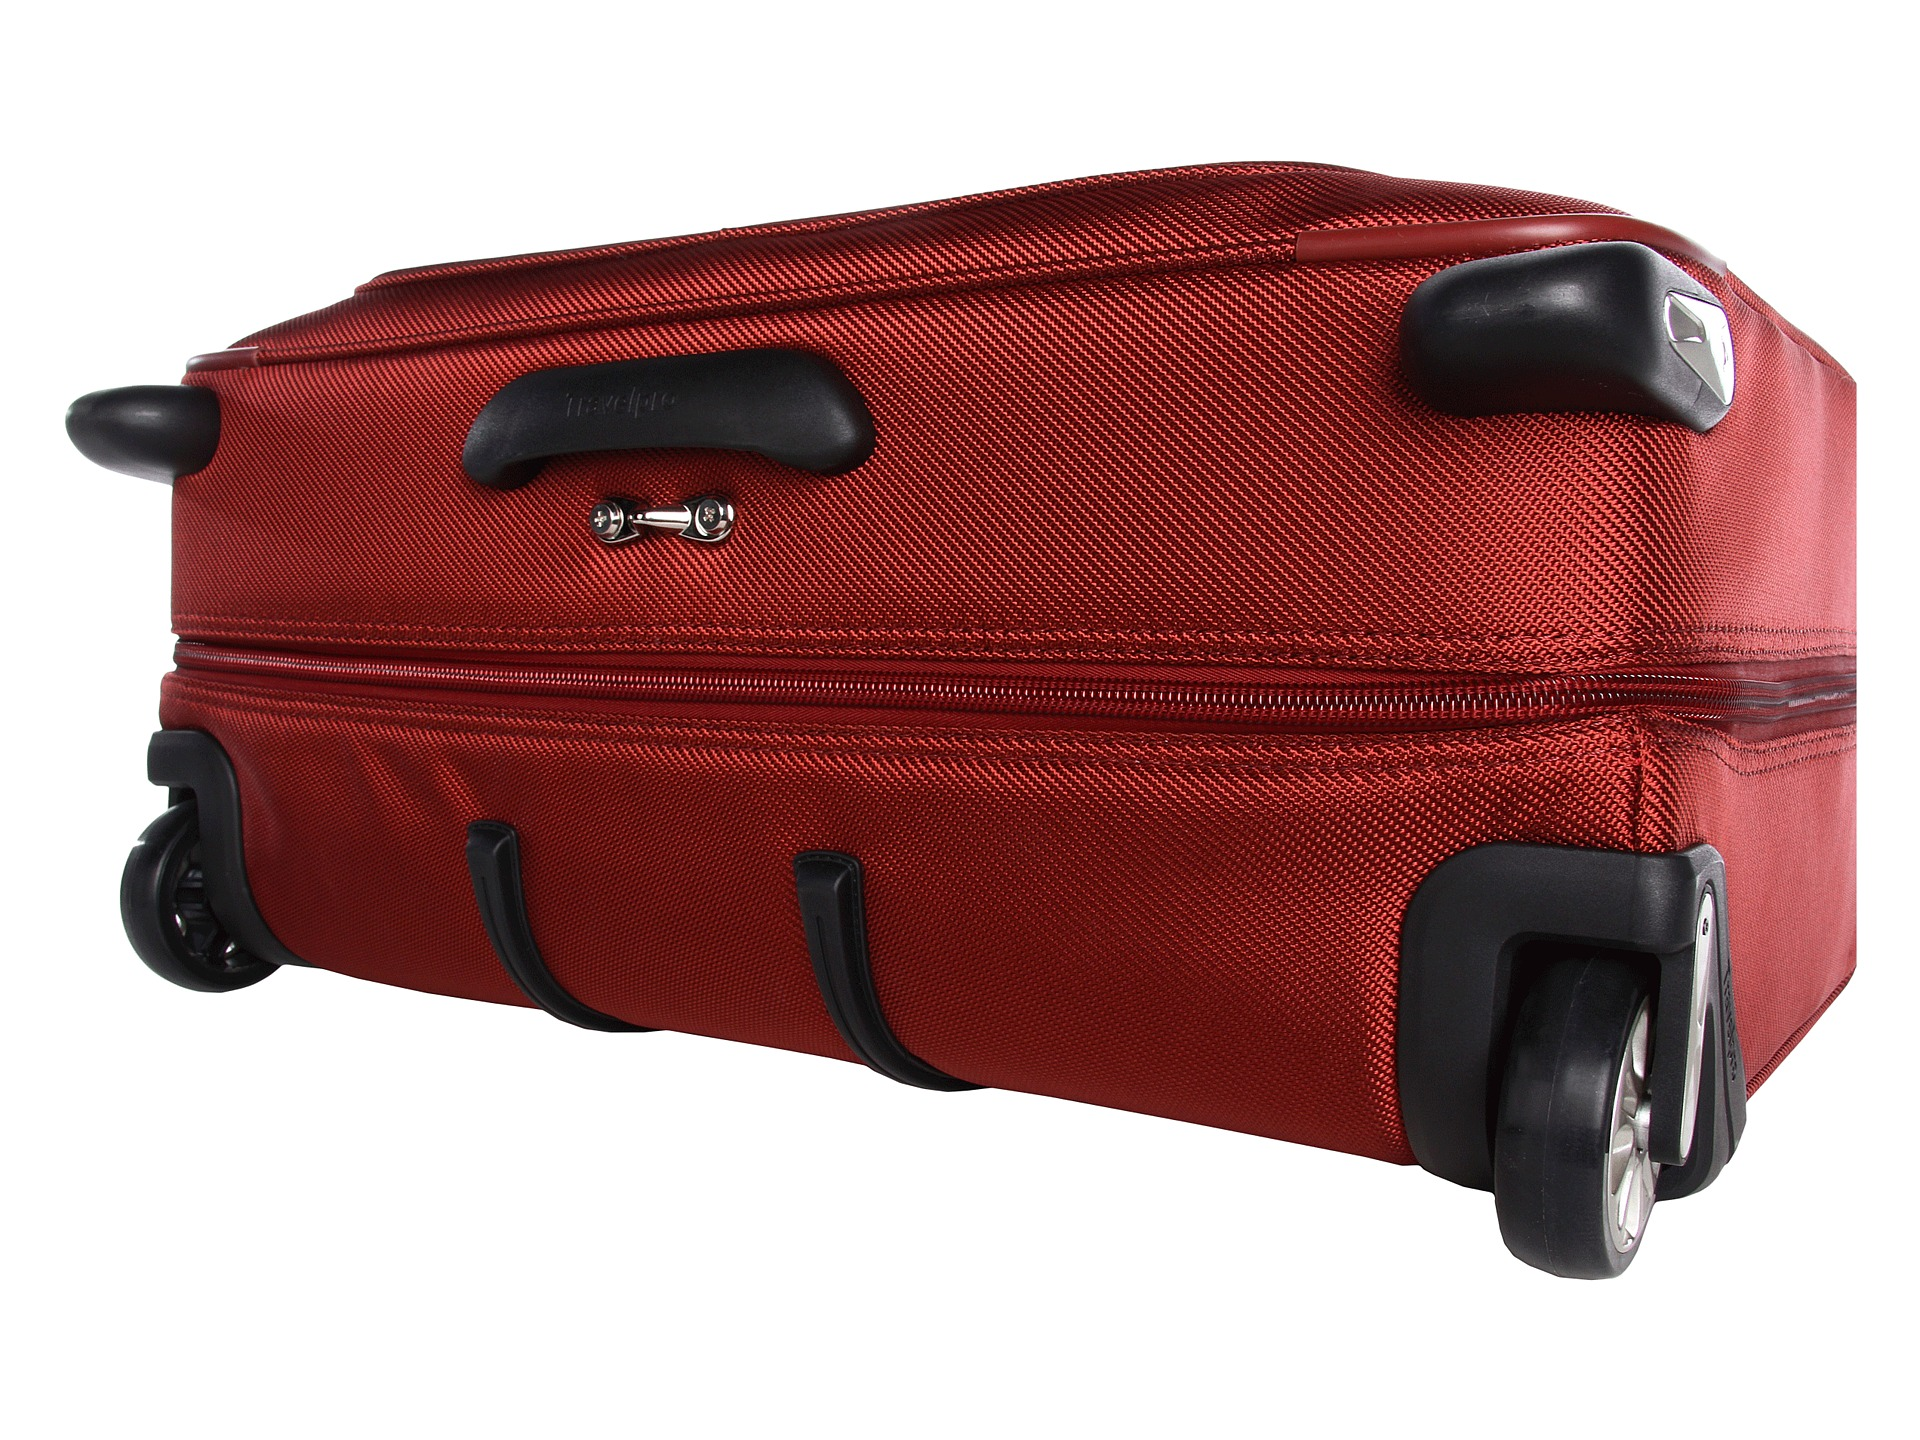 Travelpro Platinum Magna 22 Quot Carry On Rolling Garment Bag